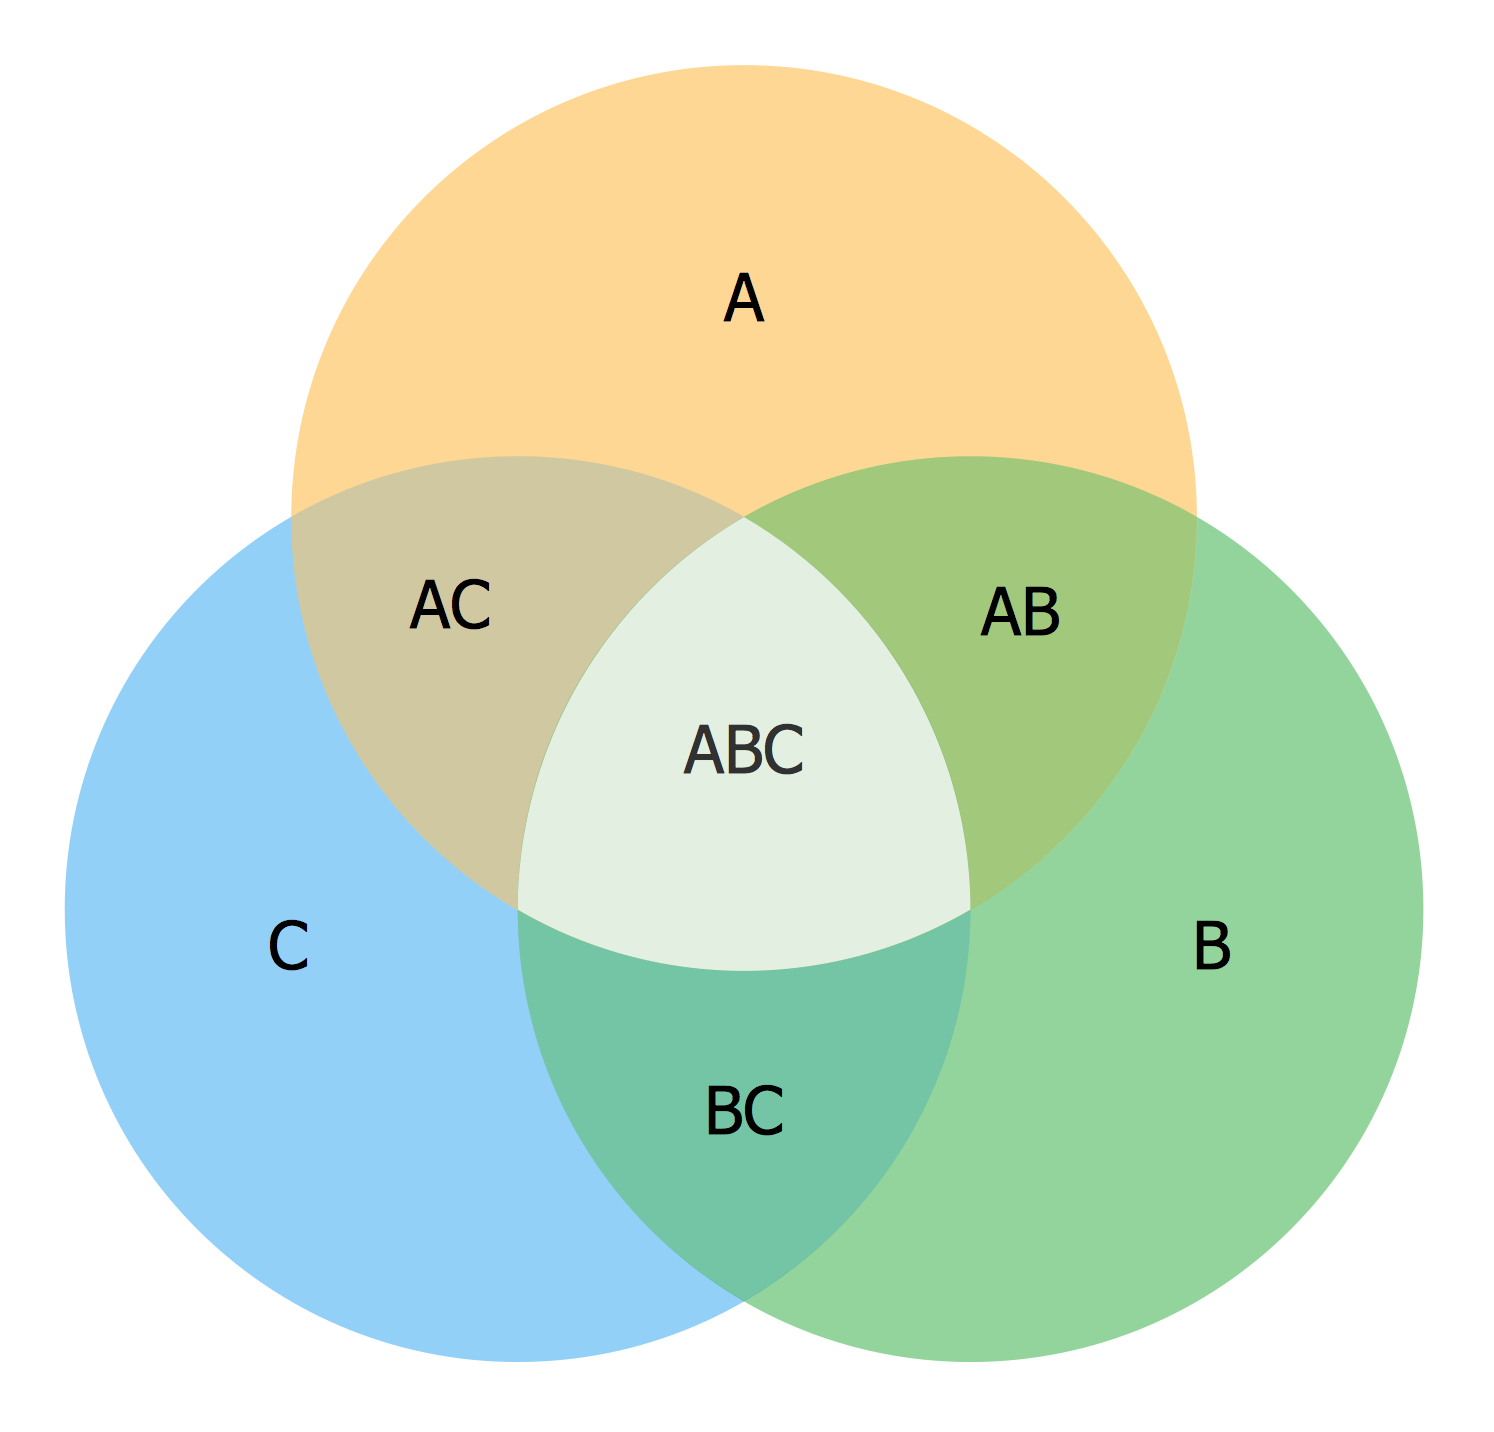 venn diagram word problems with 3 circles emg wiring 81 85 soldering diagrams solution conceptdraw